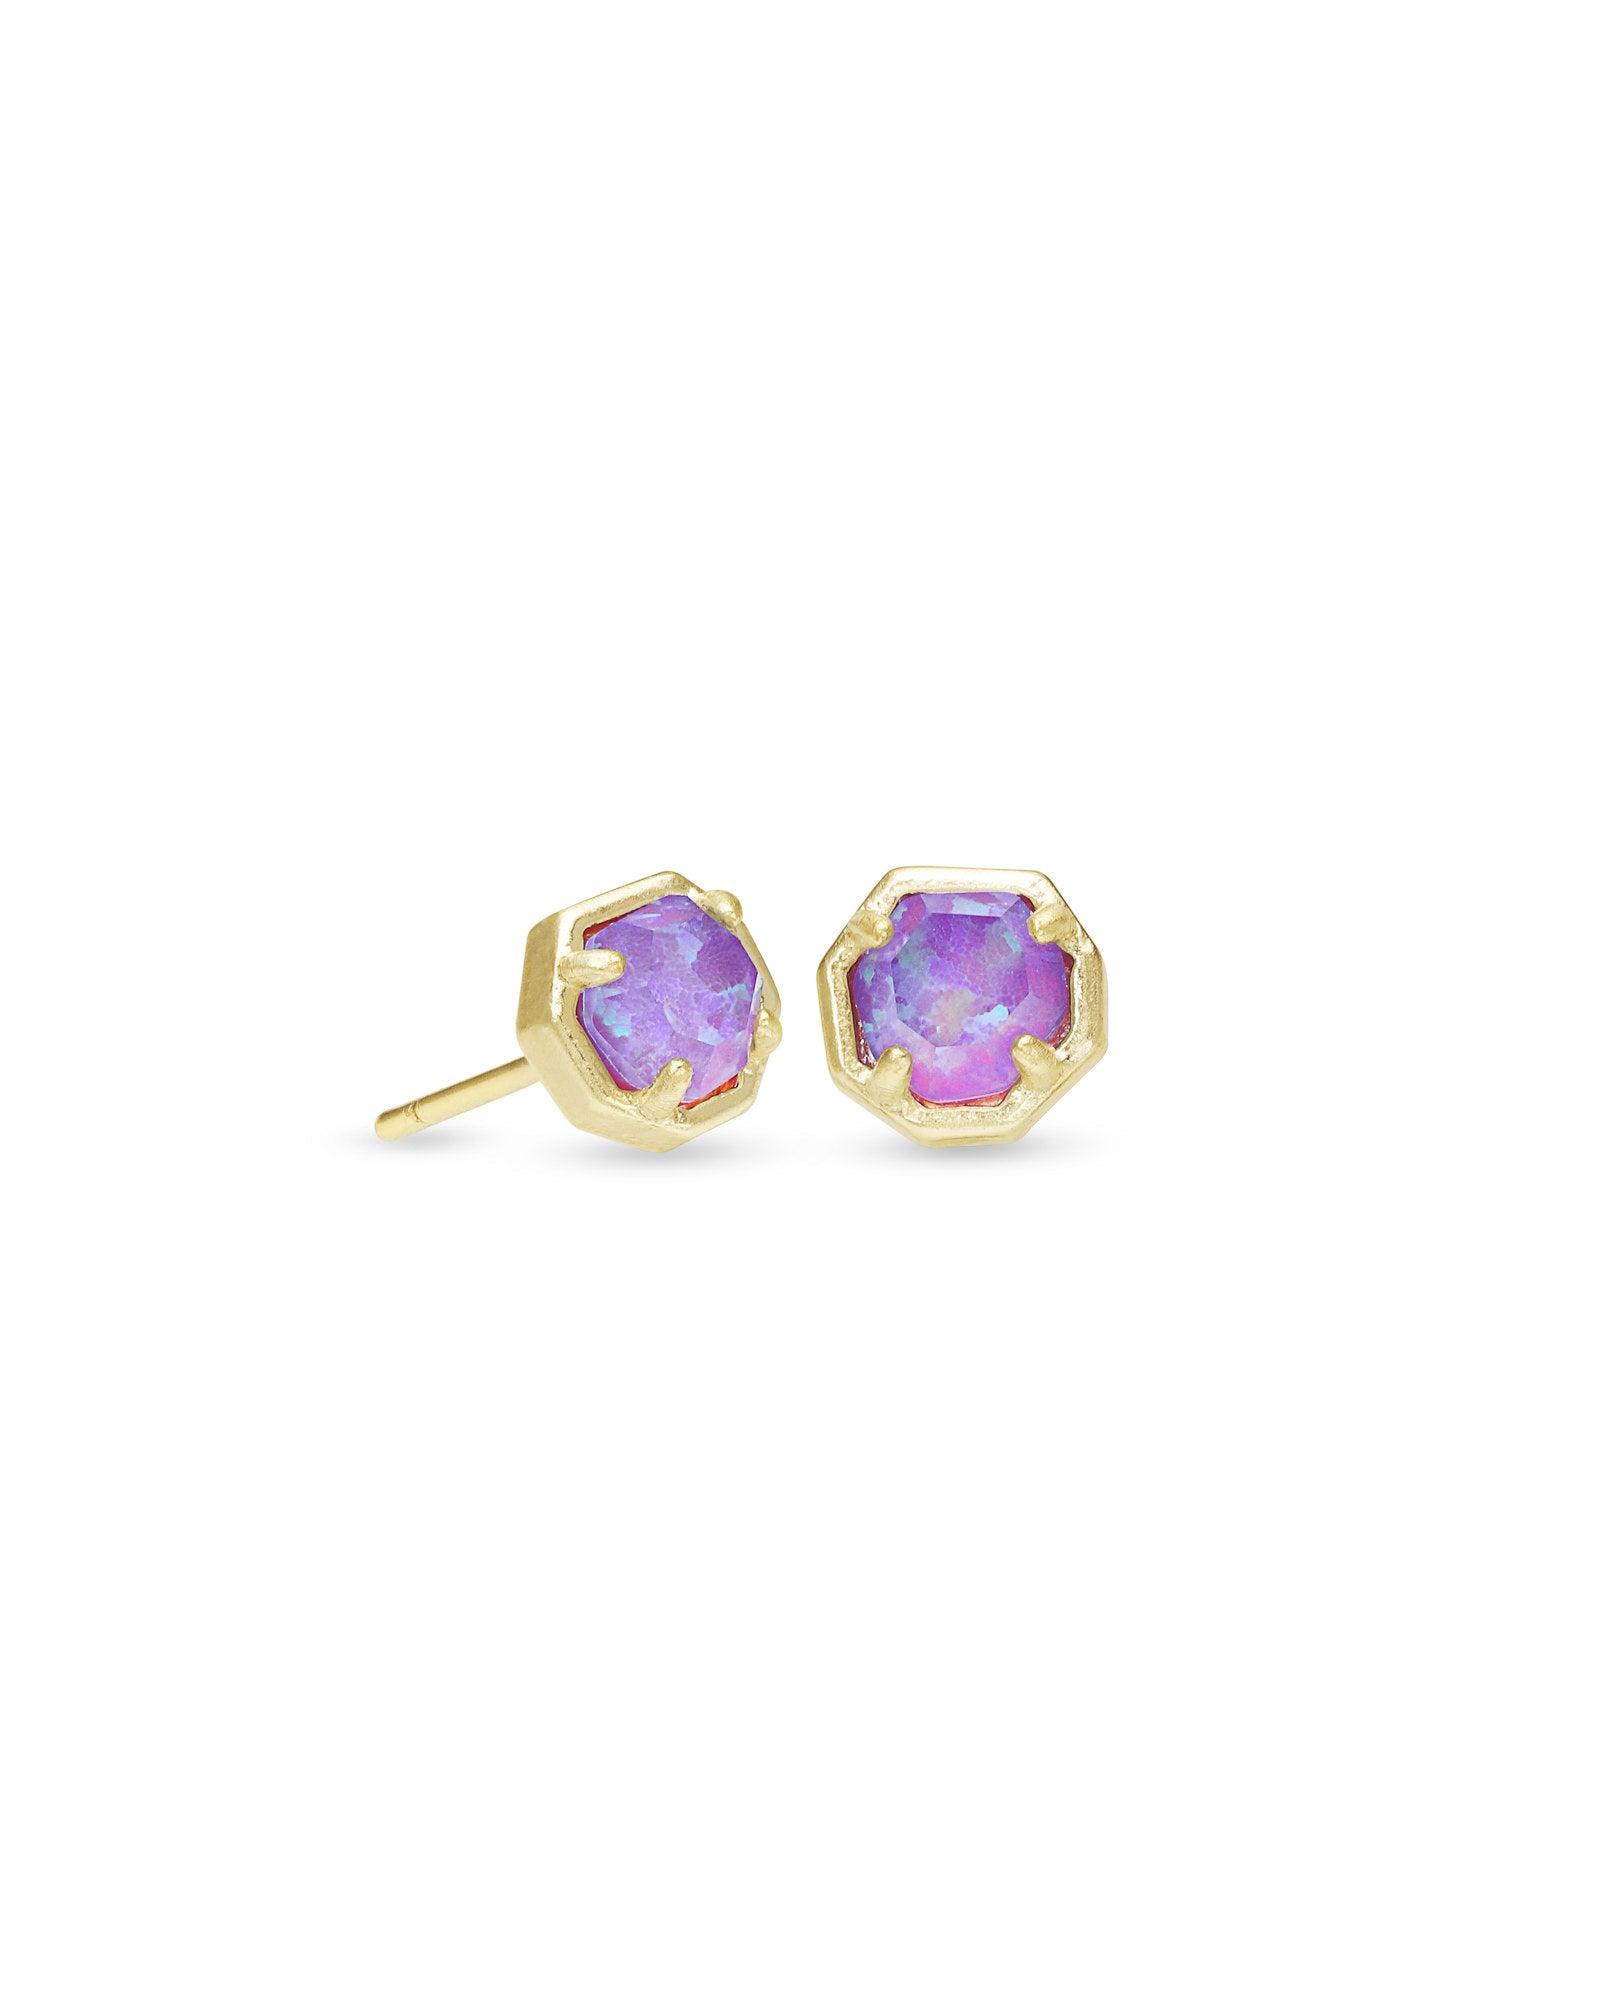 Nola Gold Stud Earrings In Violet Kyocera Opal Illusion